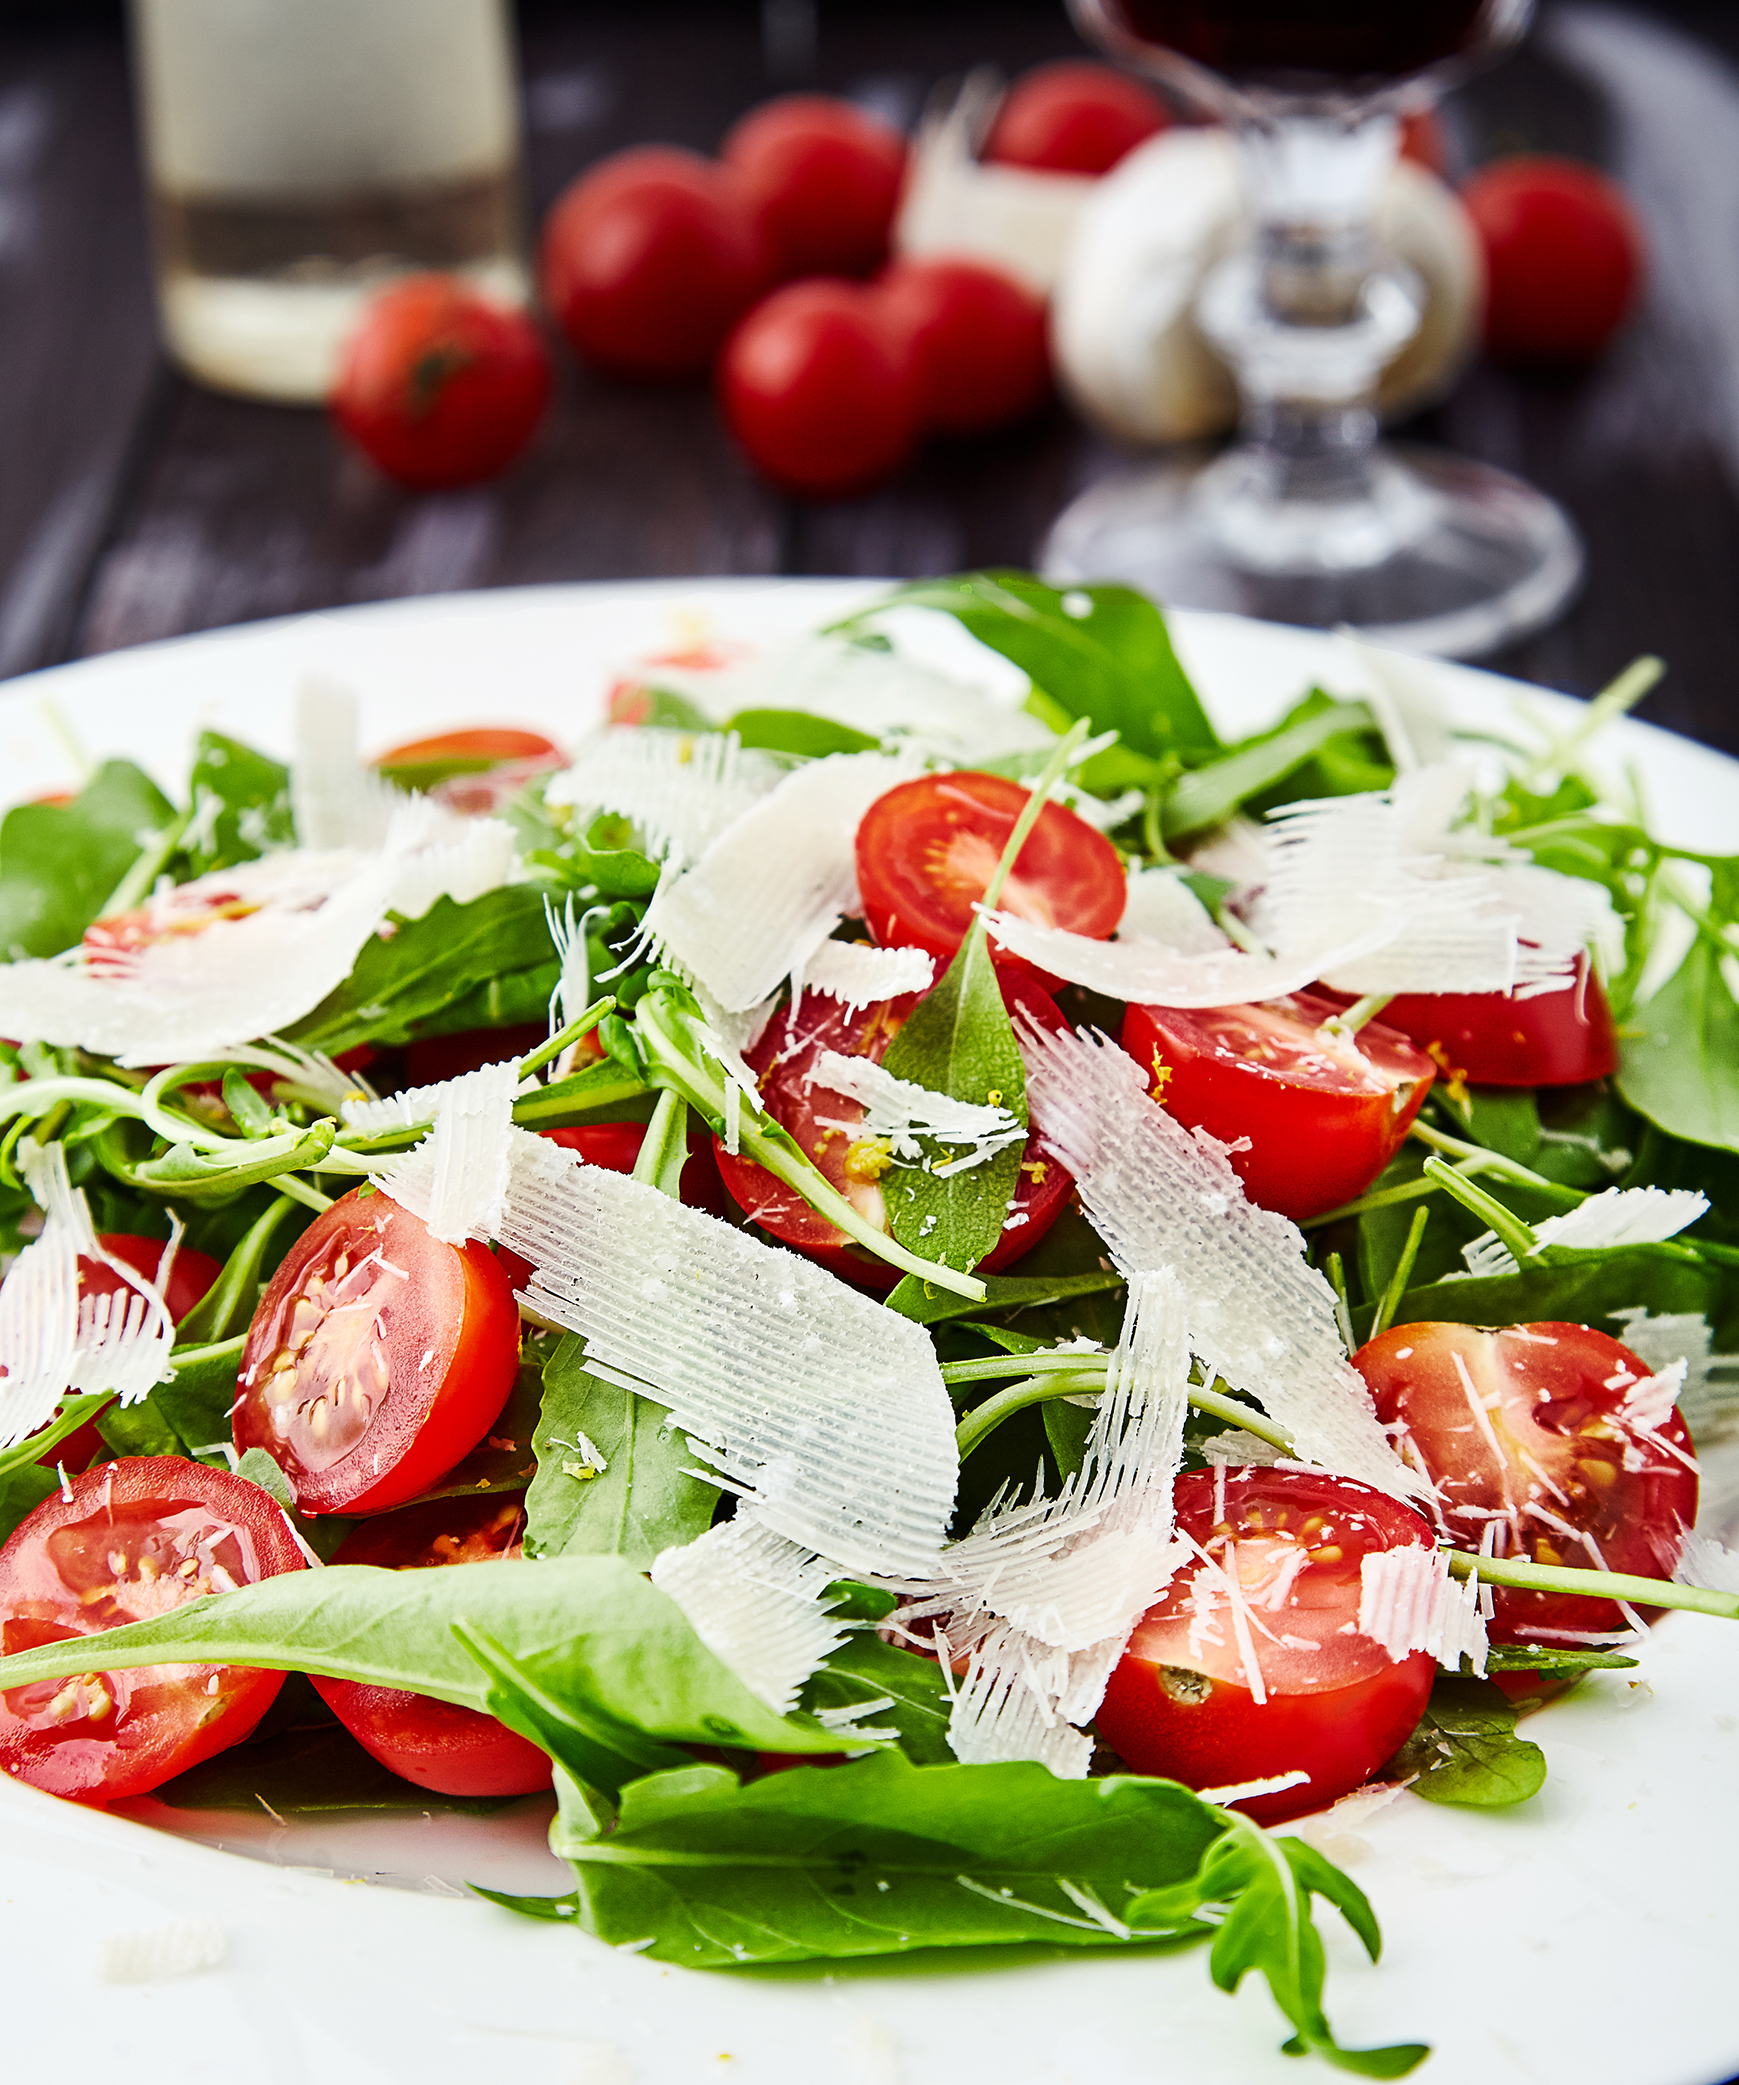 Arugula Salad with Cherry Tomatoes and Parmesan easy to make step-by-step recipe